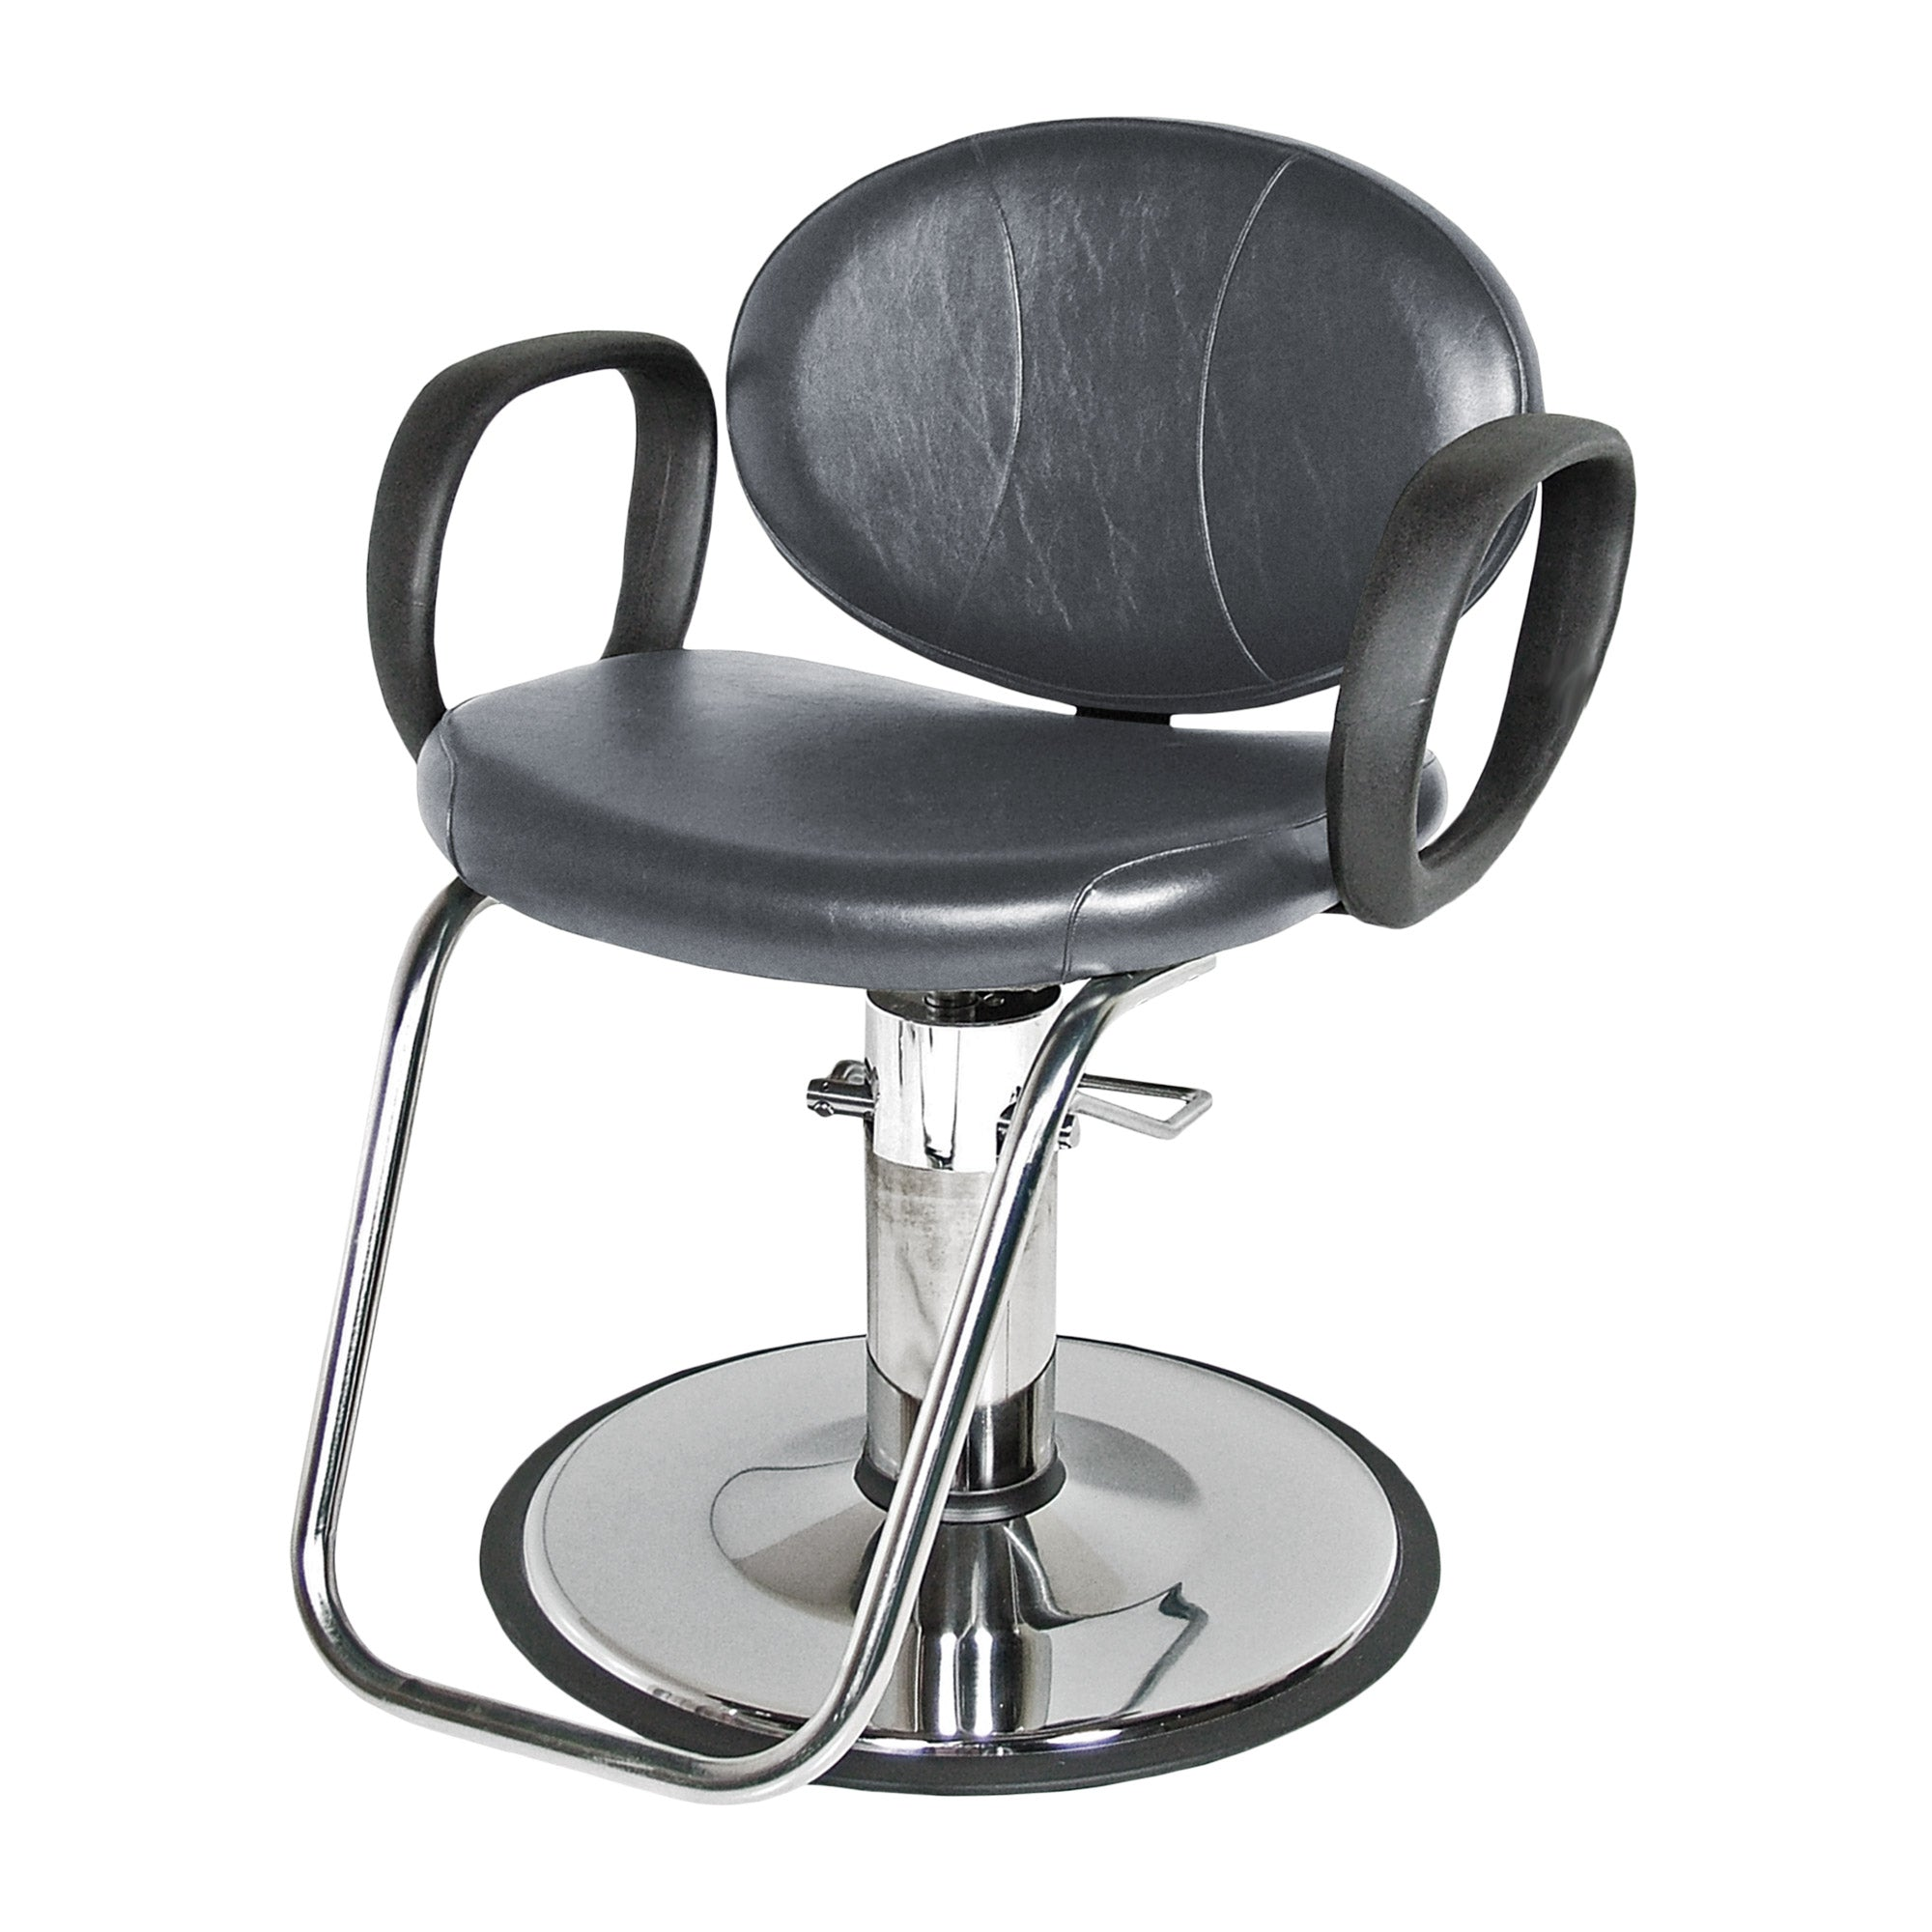 Berra Styling Chair - Collins